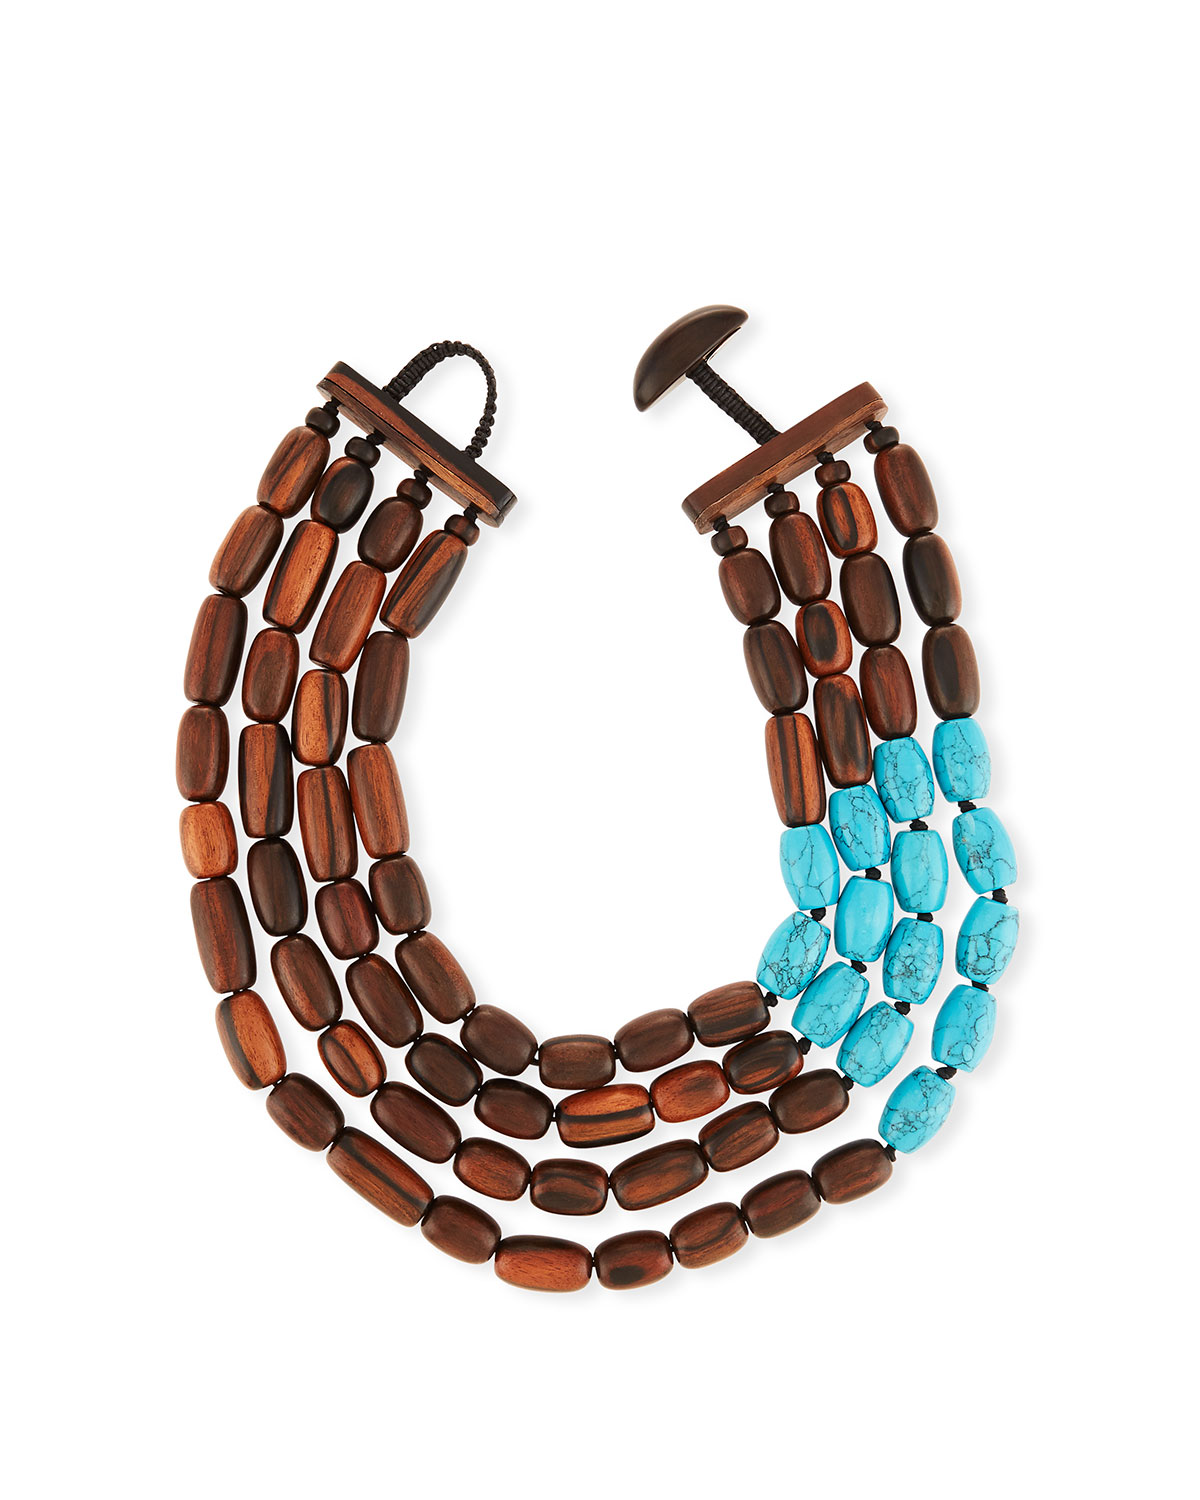 Four-Strand Statement Necklace w/ Wood & Turquoise